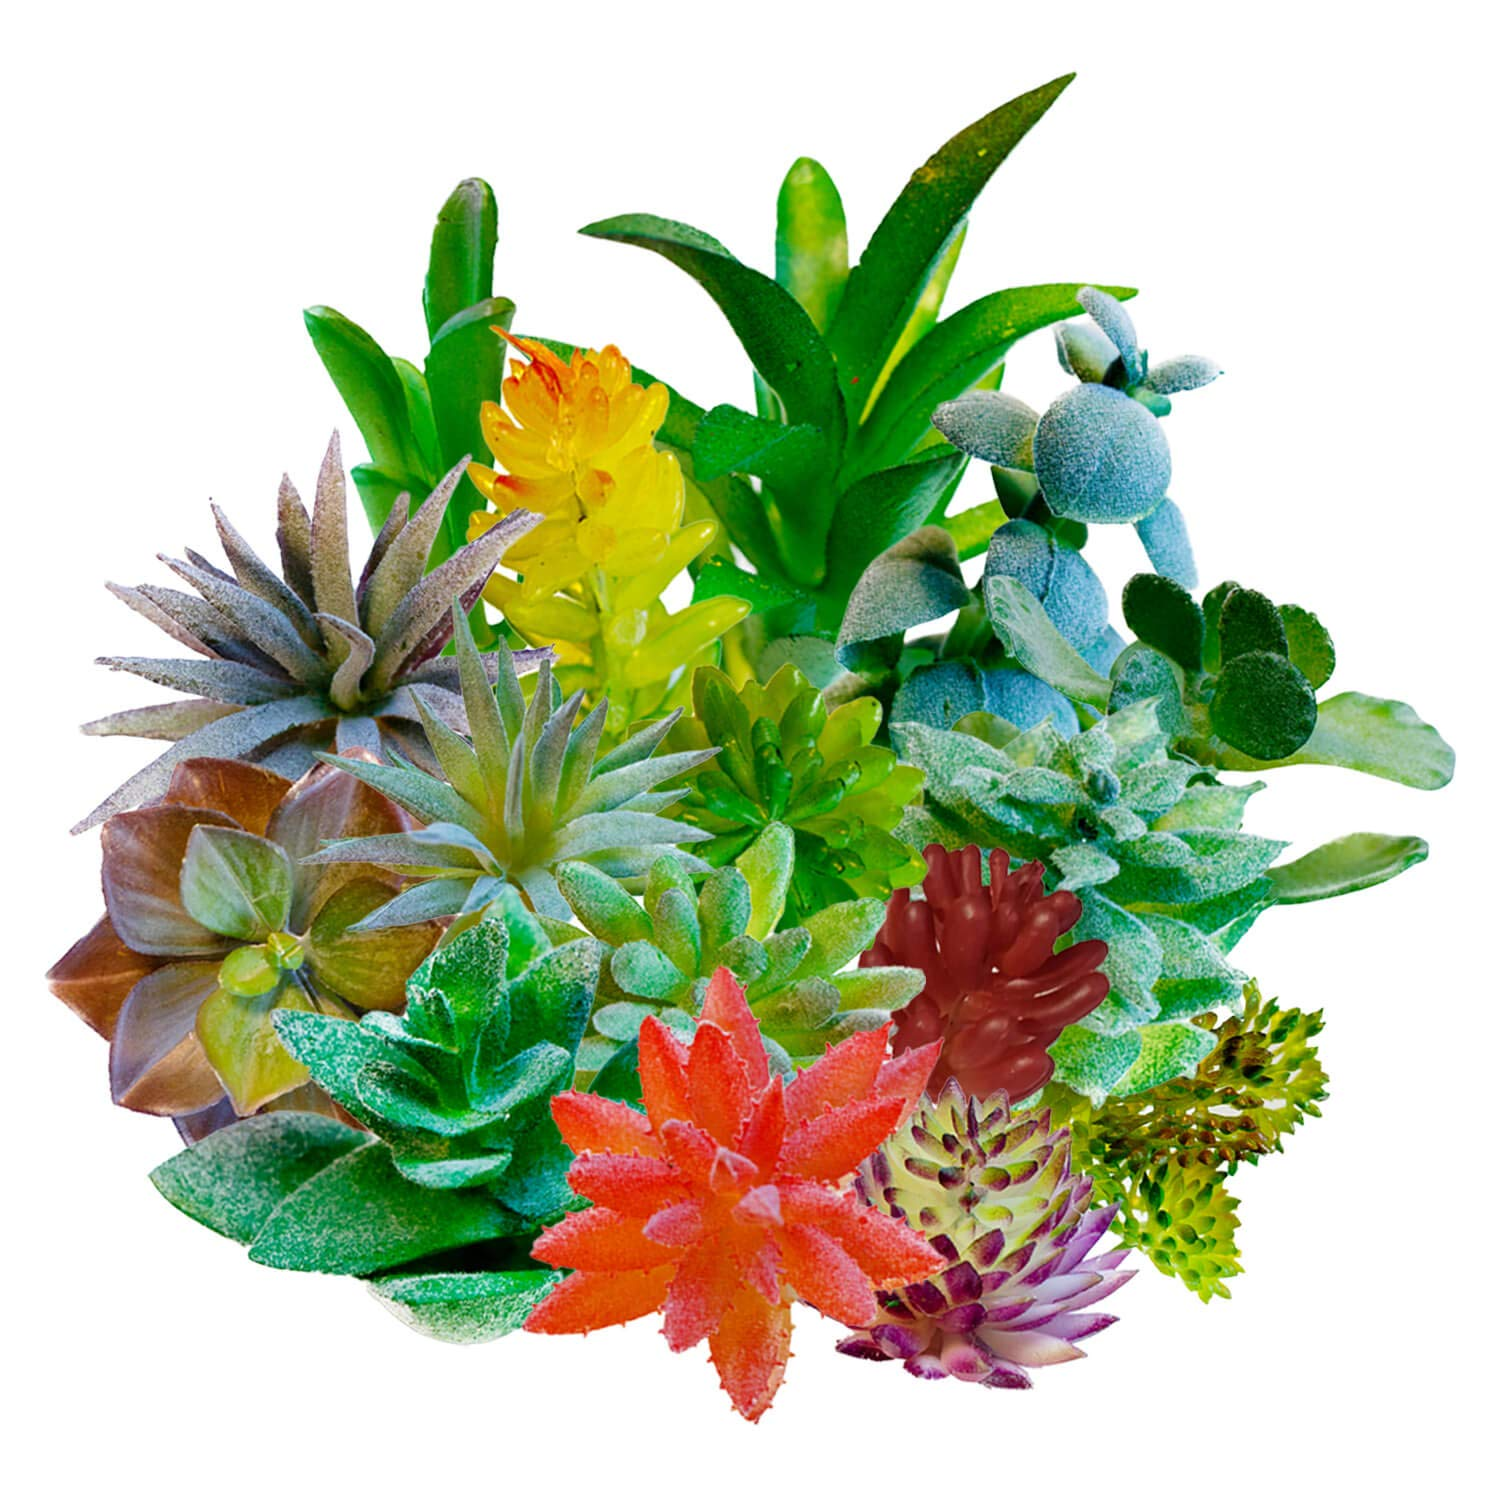 Artificial Succulent Plants Faux Assorted – 16PCS Unpotted Mini Plastic Greenery Bulk Realistic Decoration Small Fake Flowers Cactus Planta – Great for Indoor Outdoor Home Wall Decor, Vase Arrangement by NATAMZ